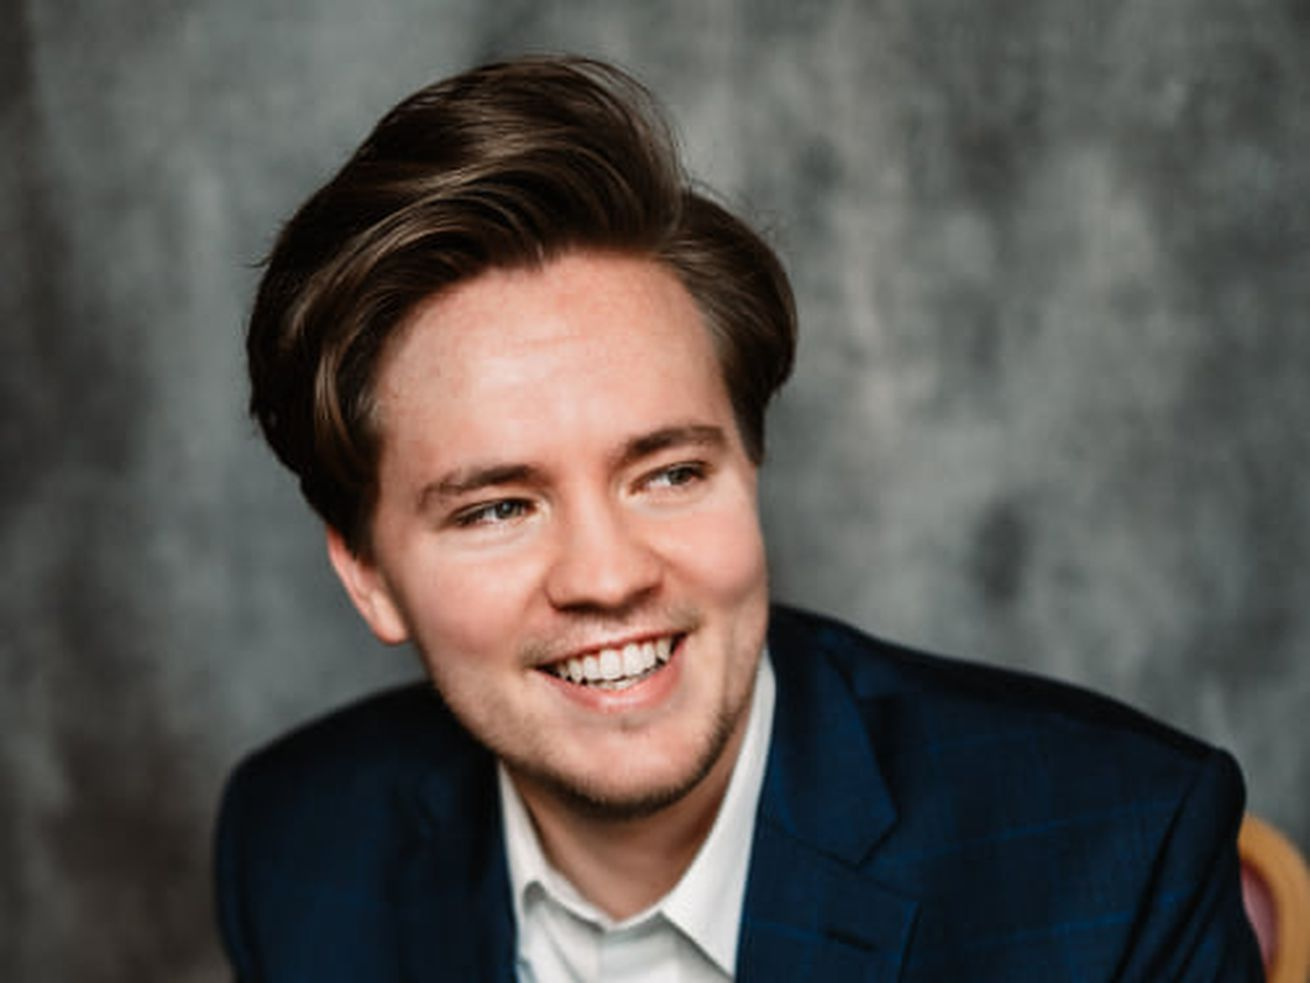 This former BYU student is a rising opera star —and he really can't believe it